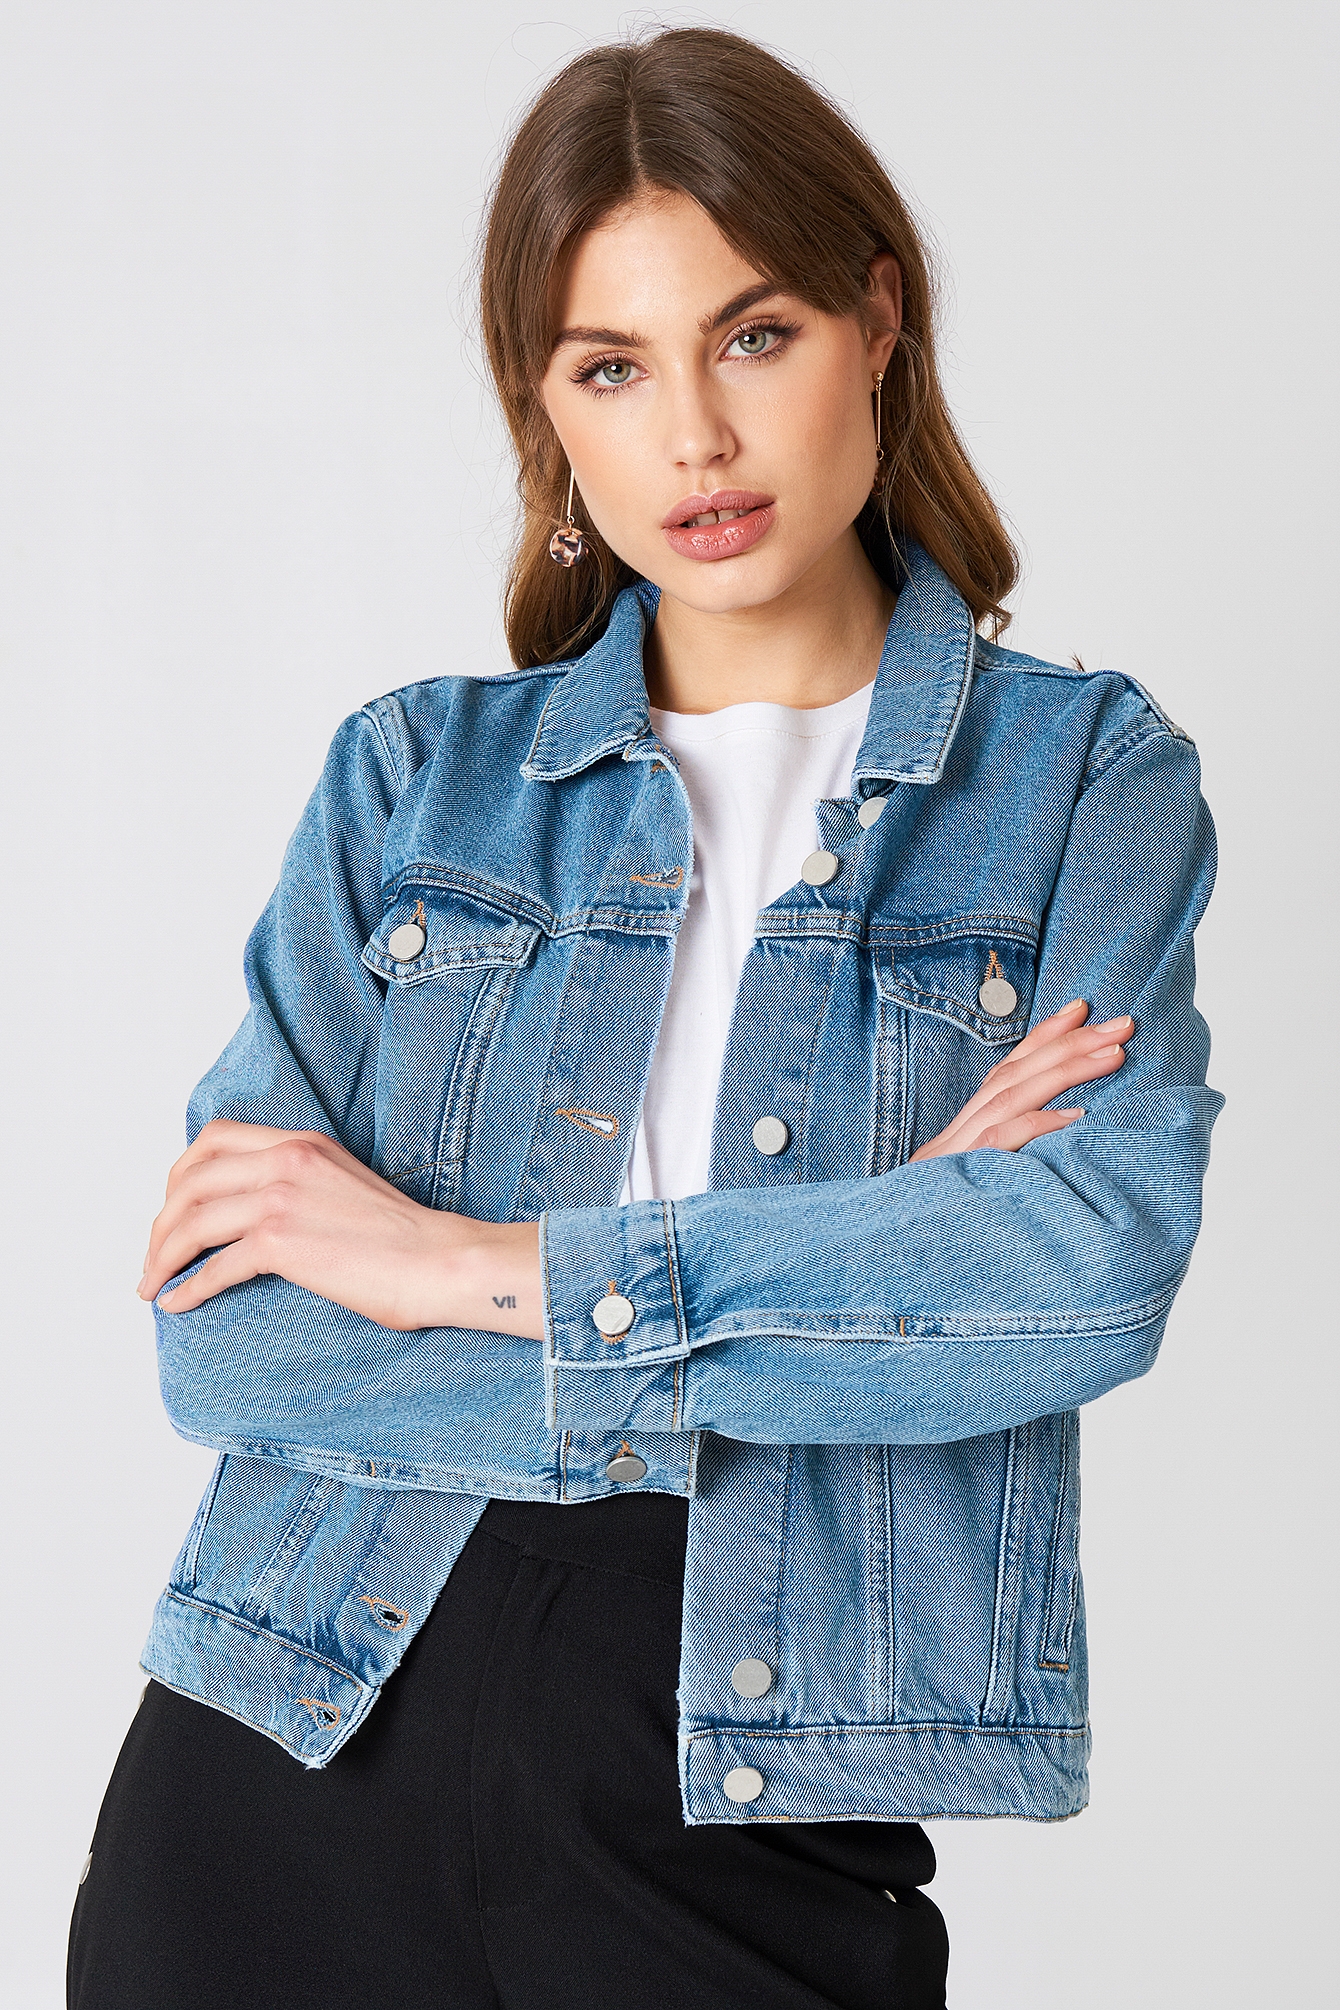 NA-KD Leader Of The Pack Denim Jacket YIc7MLP08y